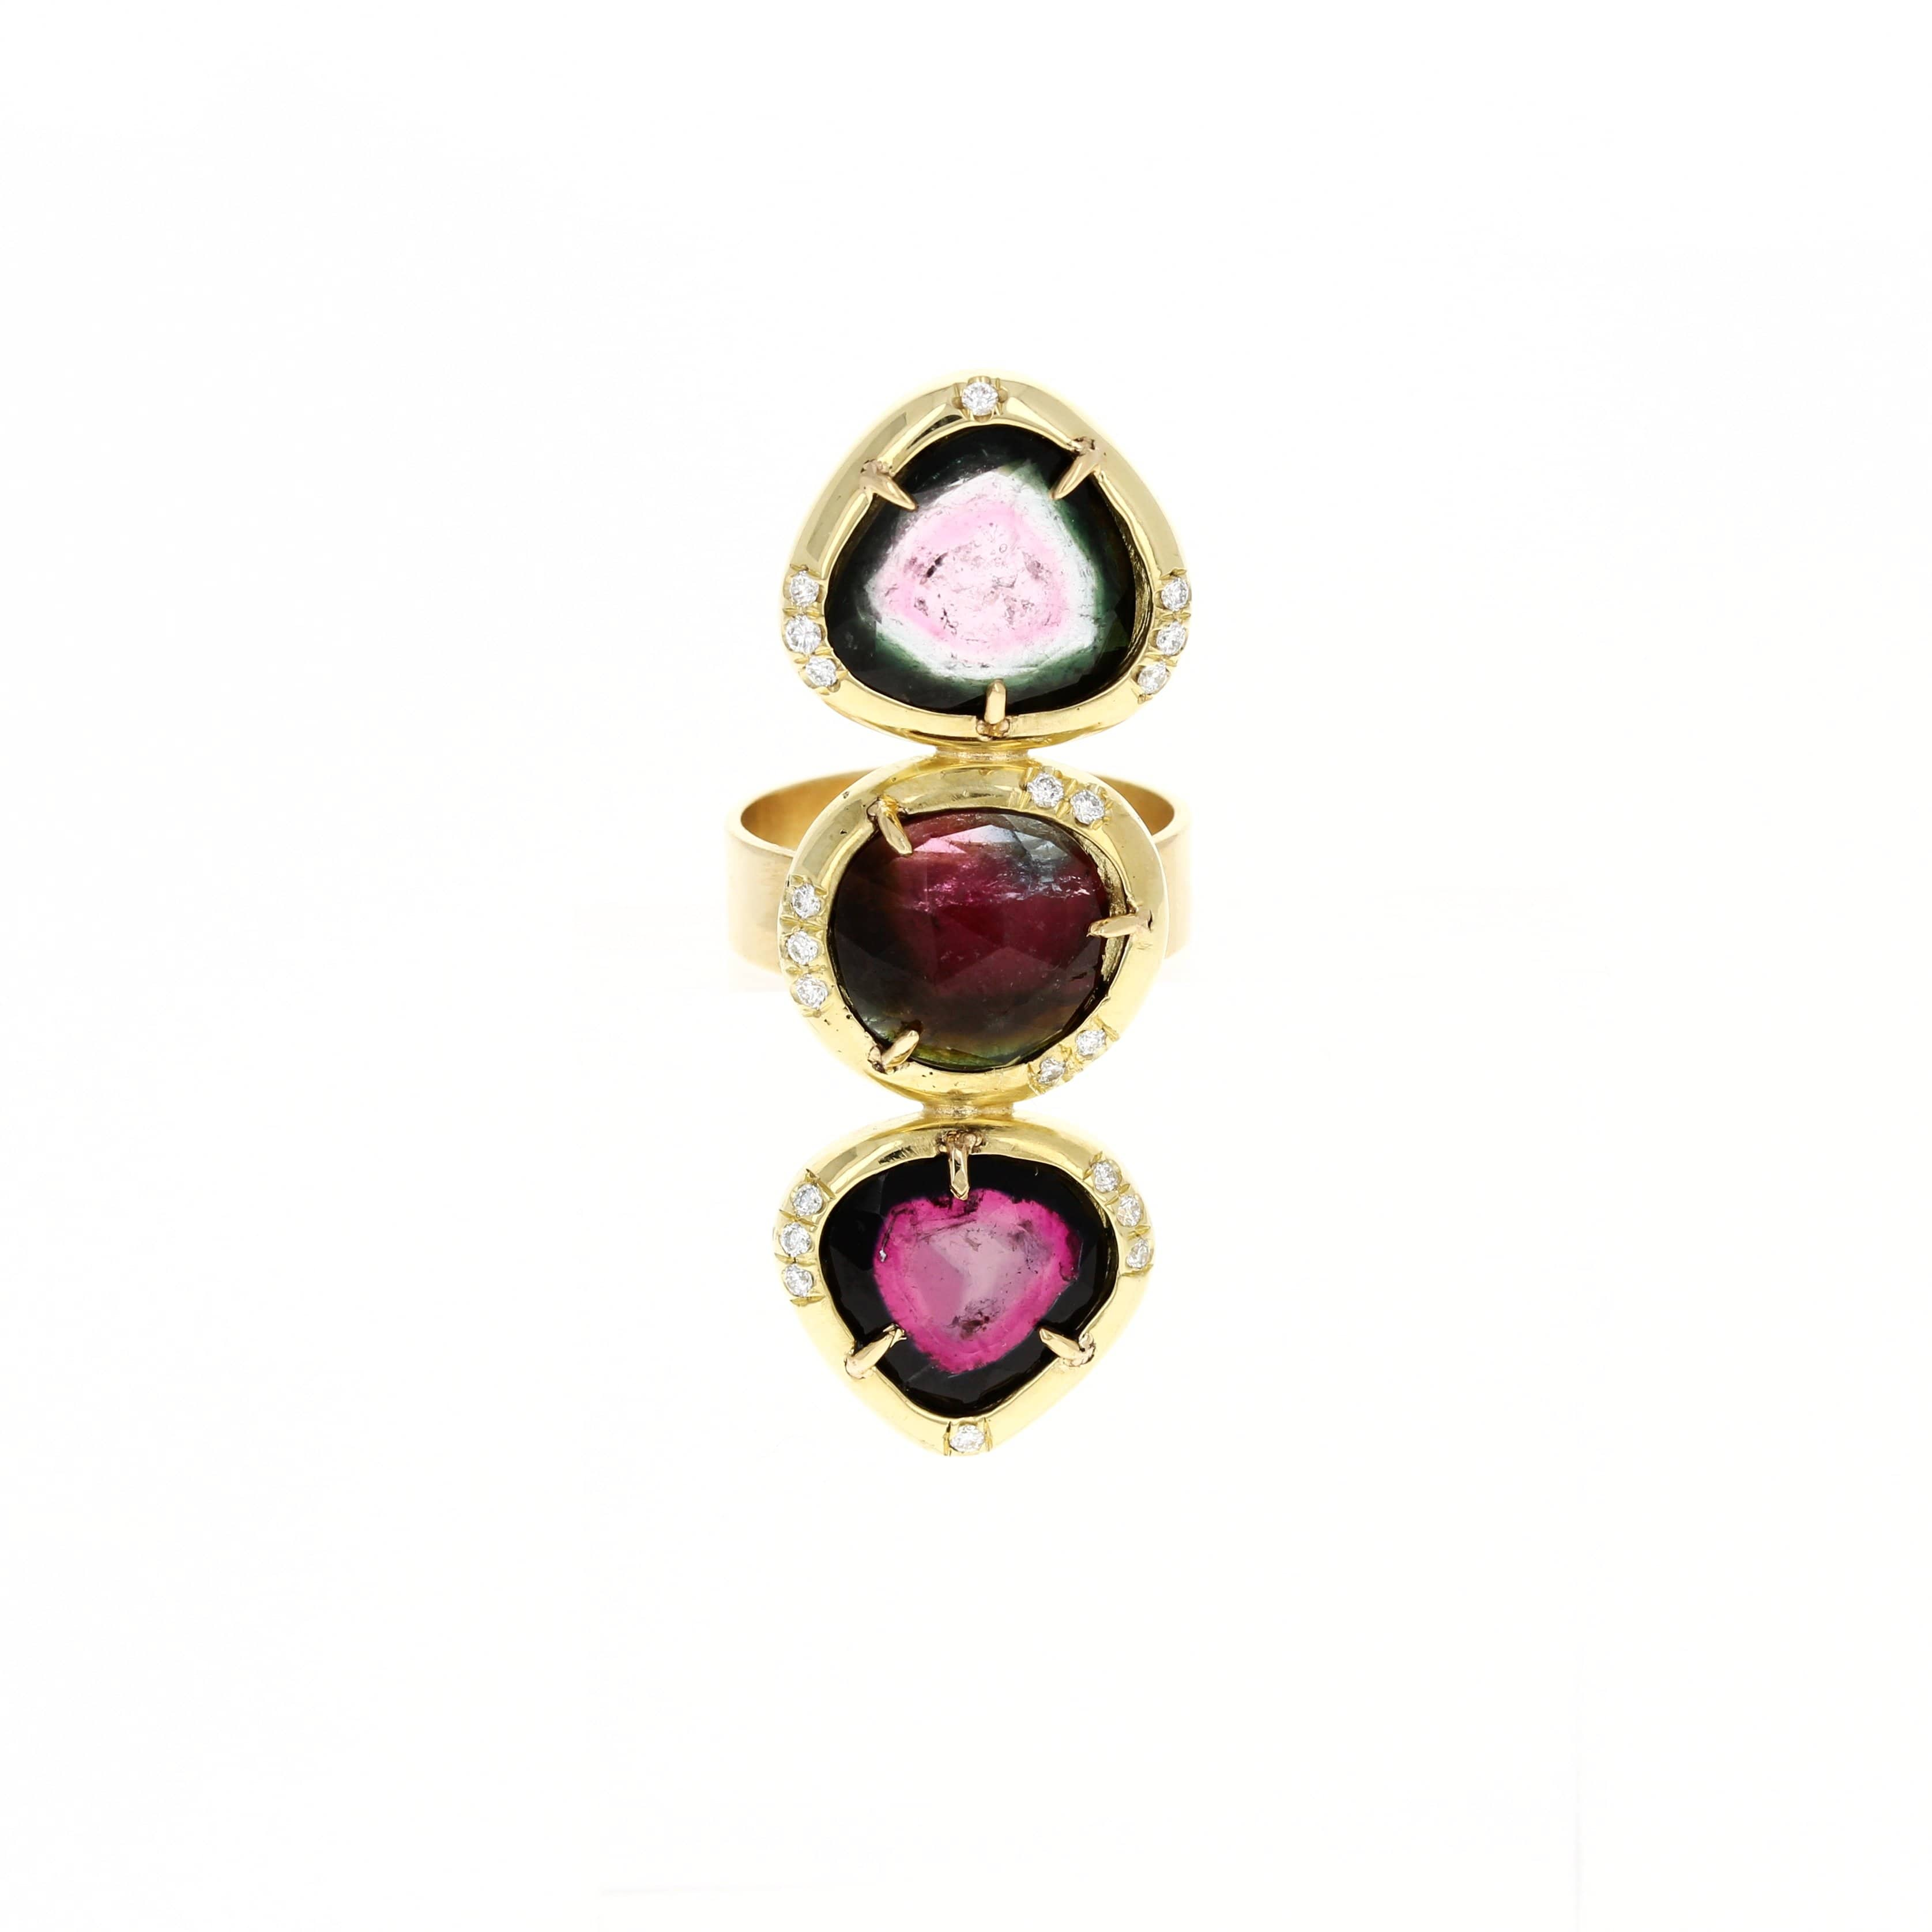 Watermelon Tourmaline Diamond Cocktail Ring - Curated Los Angeles